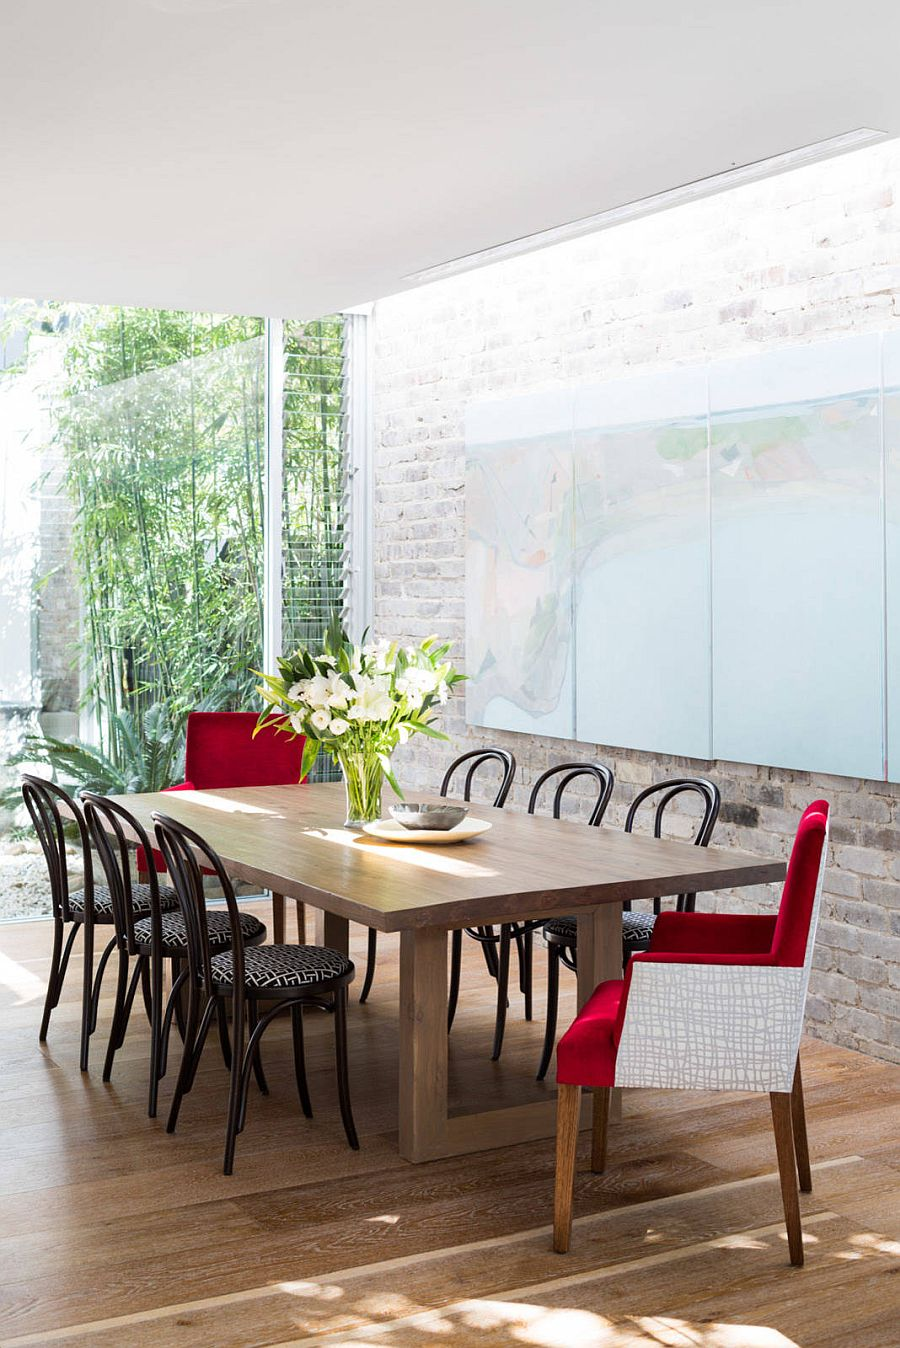 Skylight-highlights-the-whitewashed-brick-wall-in-the-backdrop-in-a-natural-fashion-28433